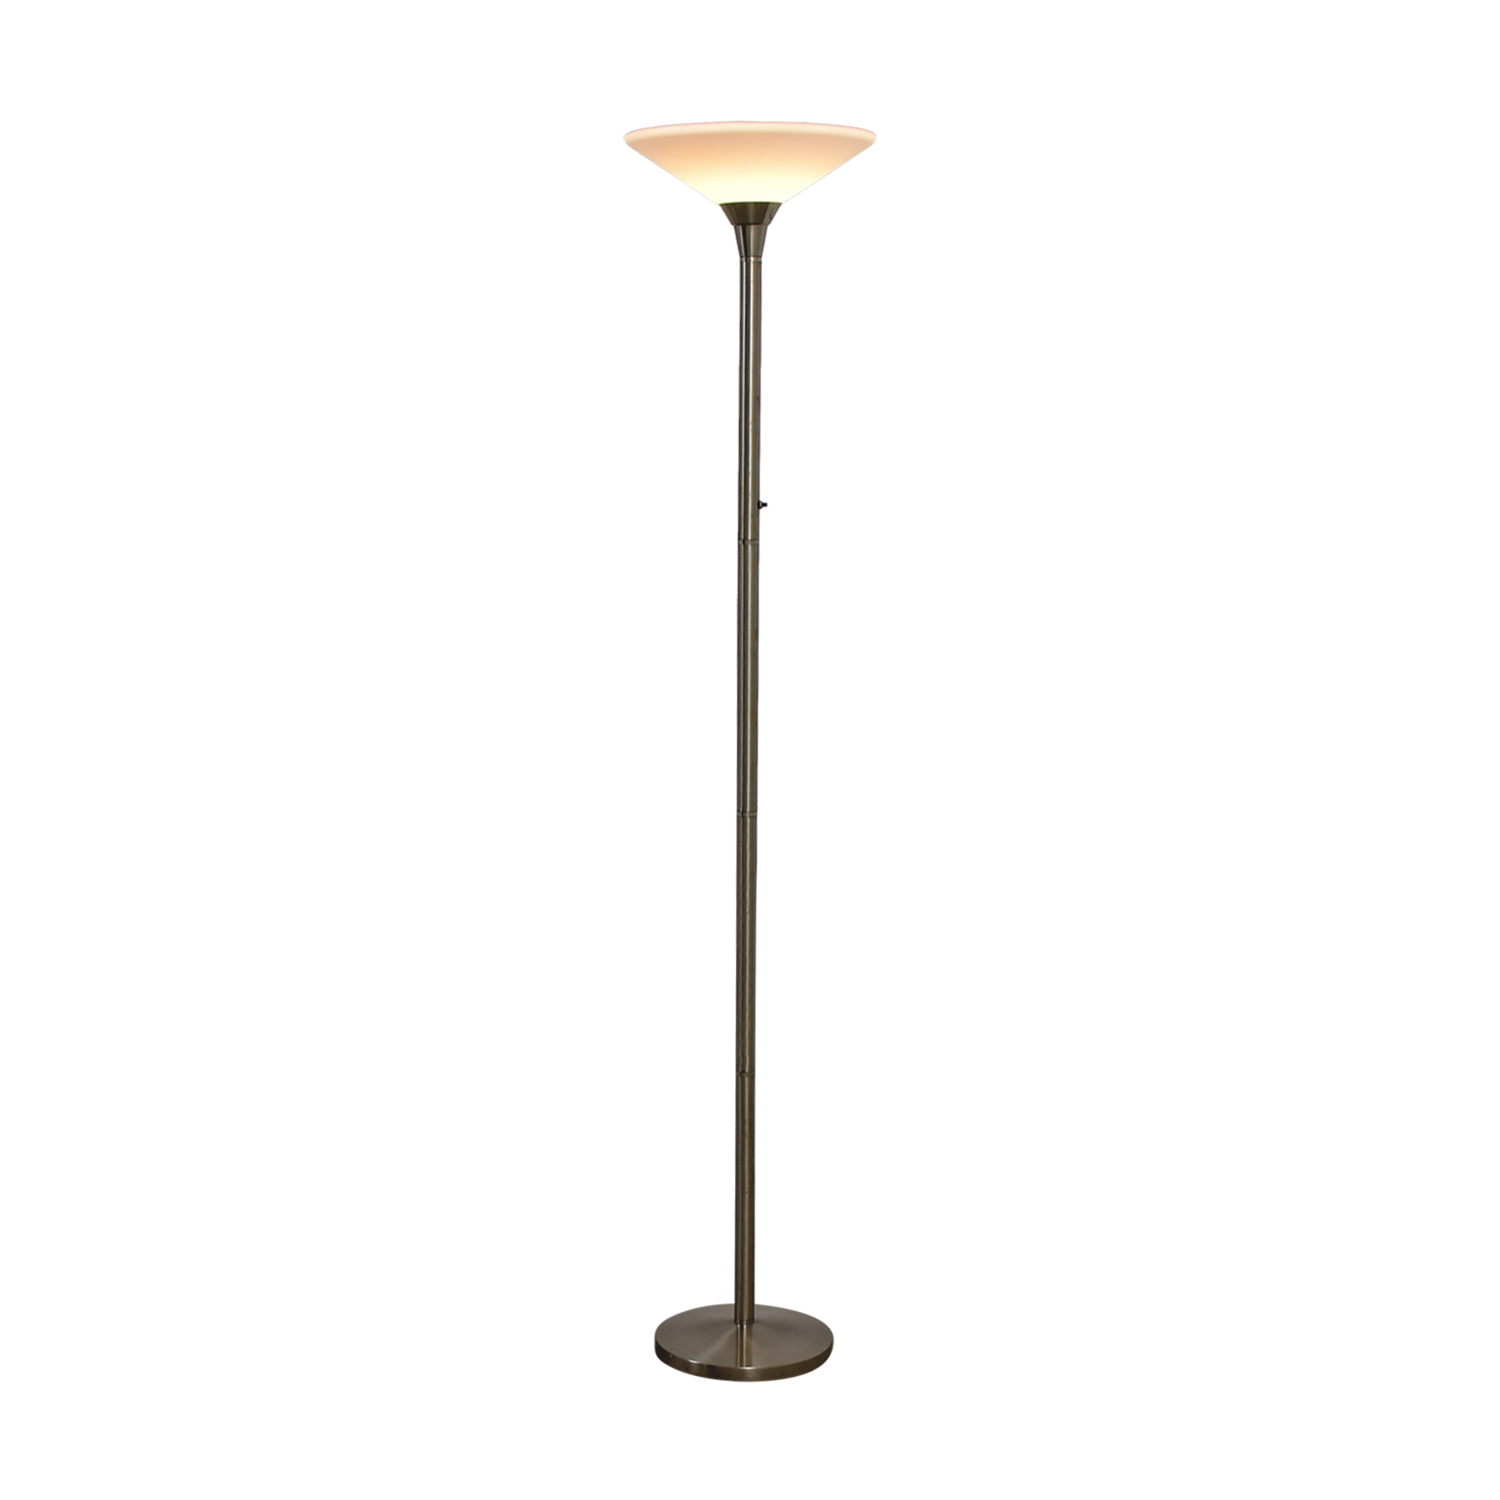 78 off domed floor lamp decor domed floor lamp nyc aloadofball Image collections